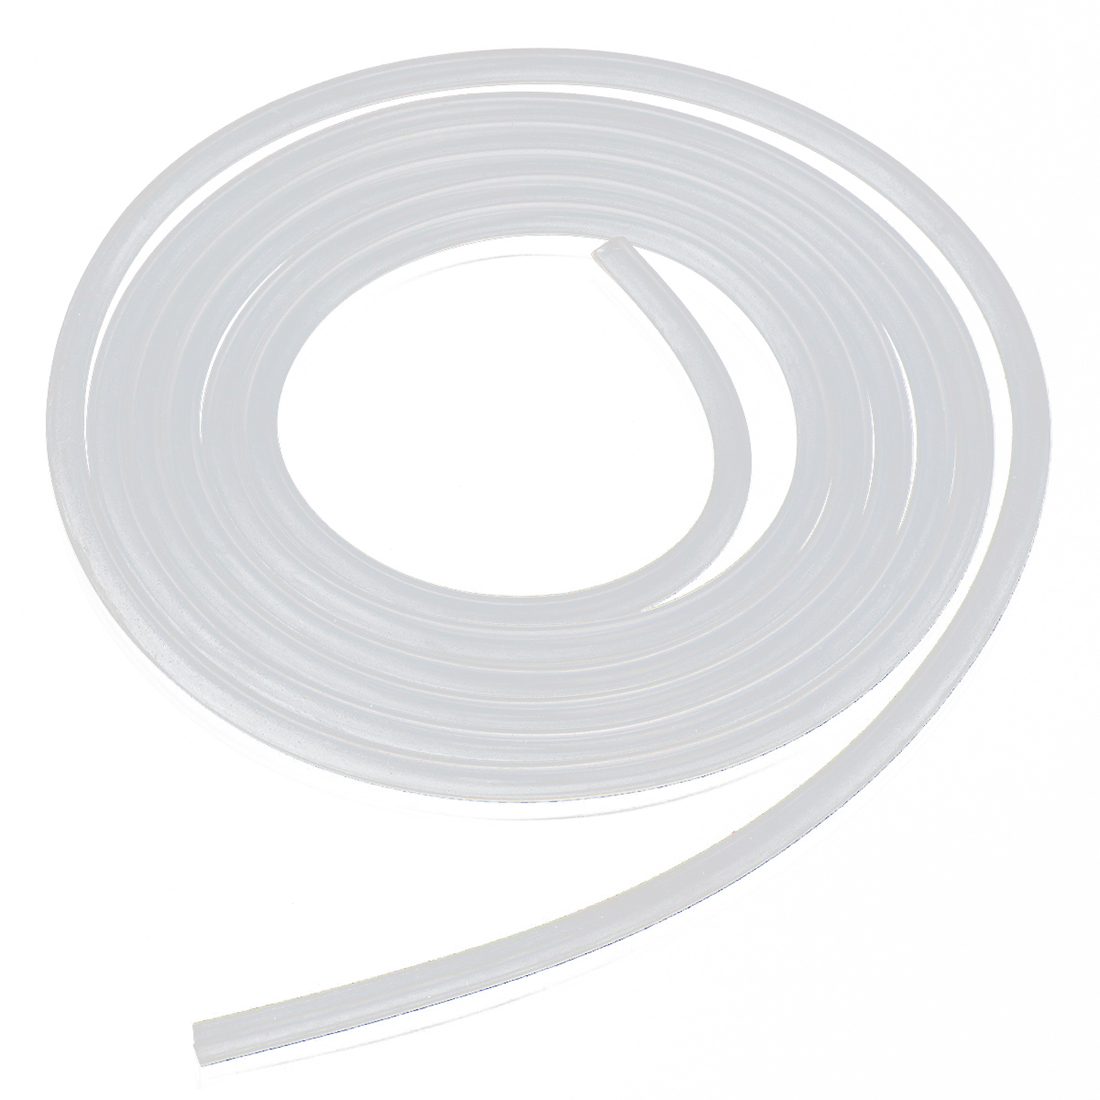 2 Meter Silicone Tube Silicone Tube Pressure Hose Highly Flexible 4 * 6mm